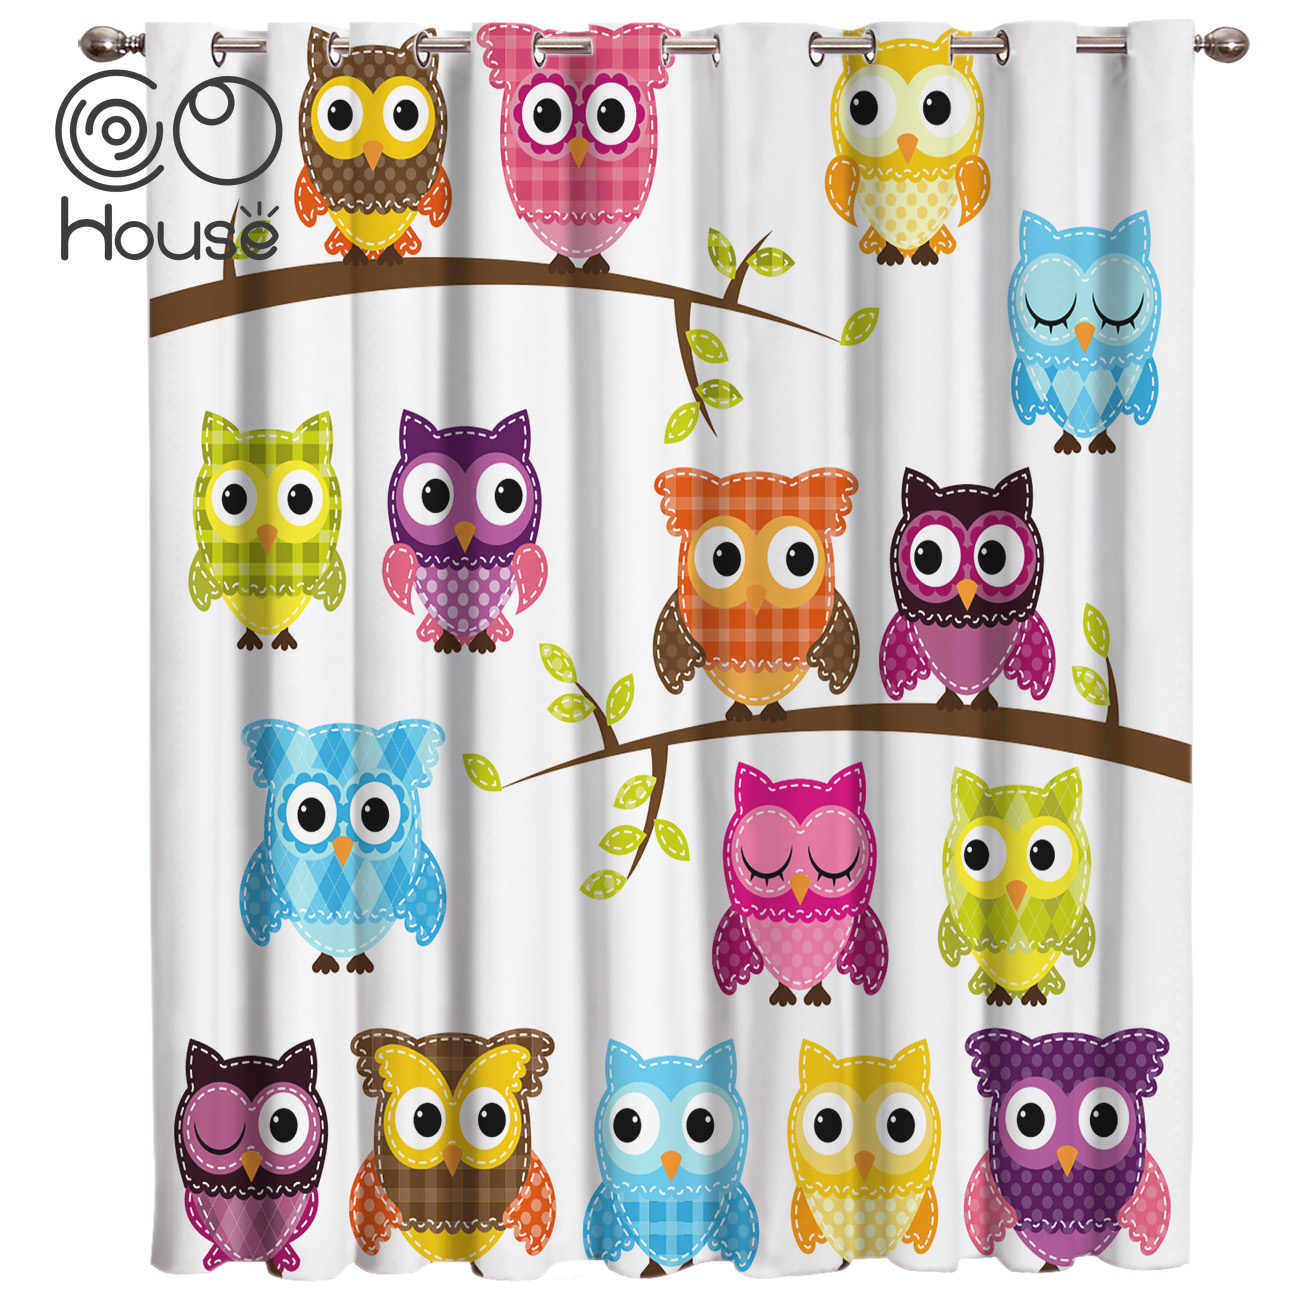 COCOHouse Cartoon Owl Animals Window Treatments Curtains Valance Curtain Lights Living Room Bathroom Blackout Curtains Outdoor